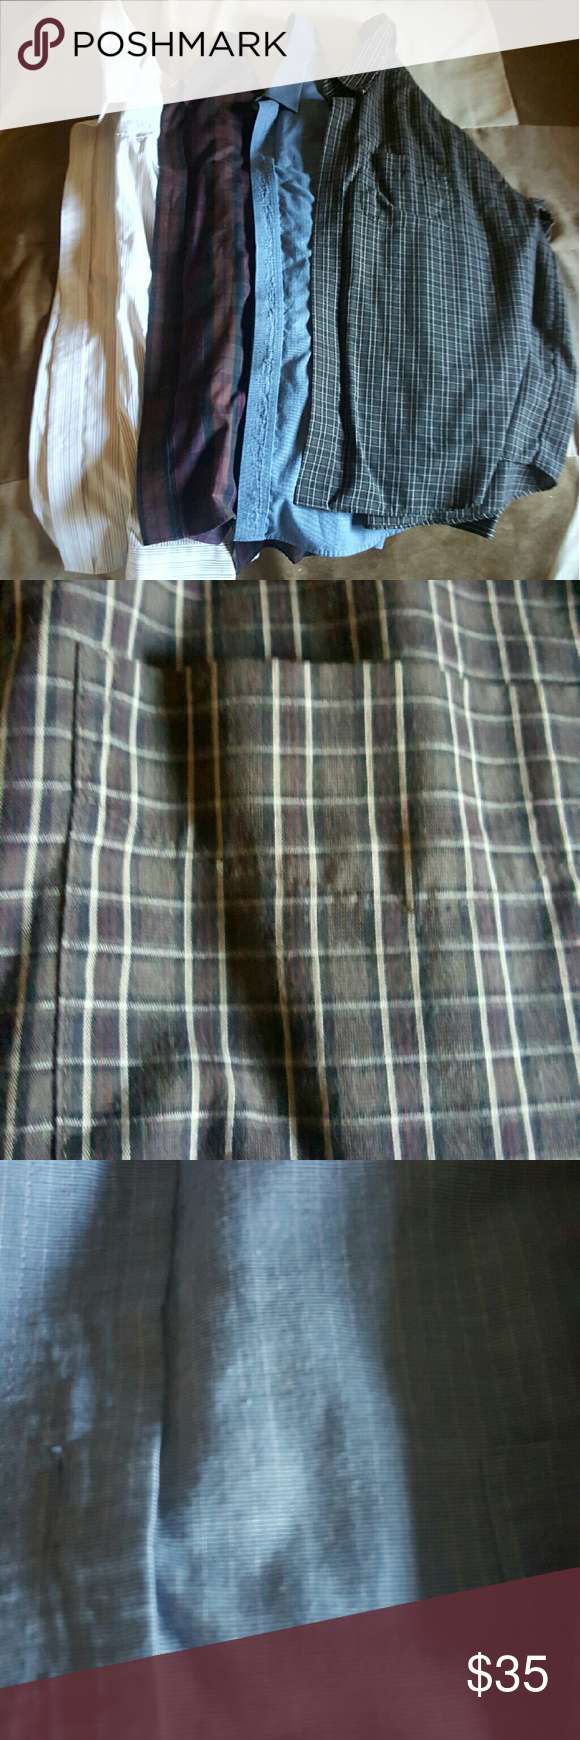 4 mens dress shirts. Size 17.5 neck 34-35 sleeves. All like new.  Long sleeves various Shirts Dress Shirts